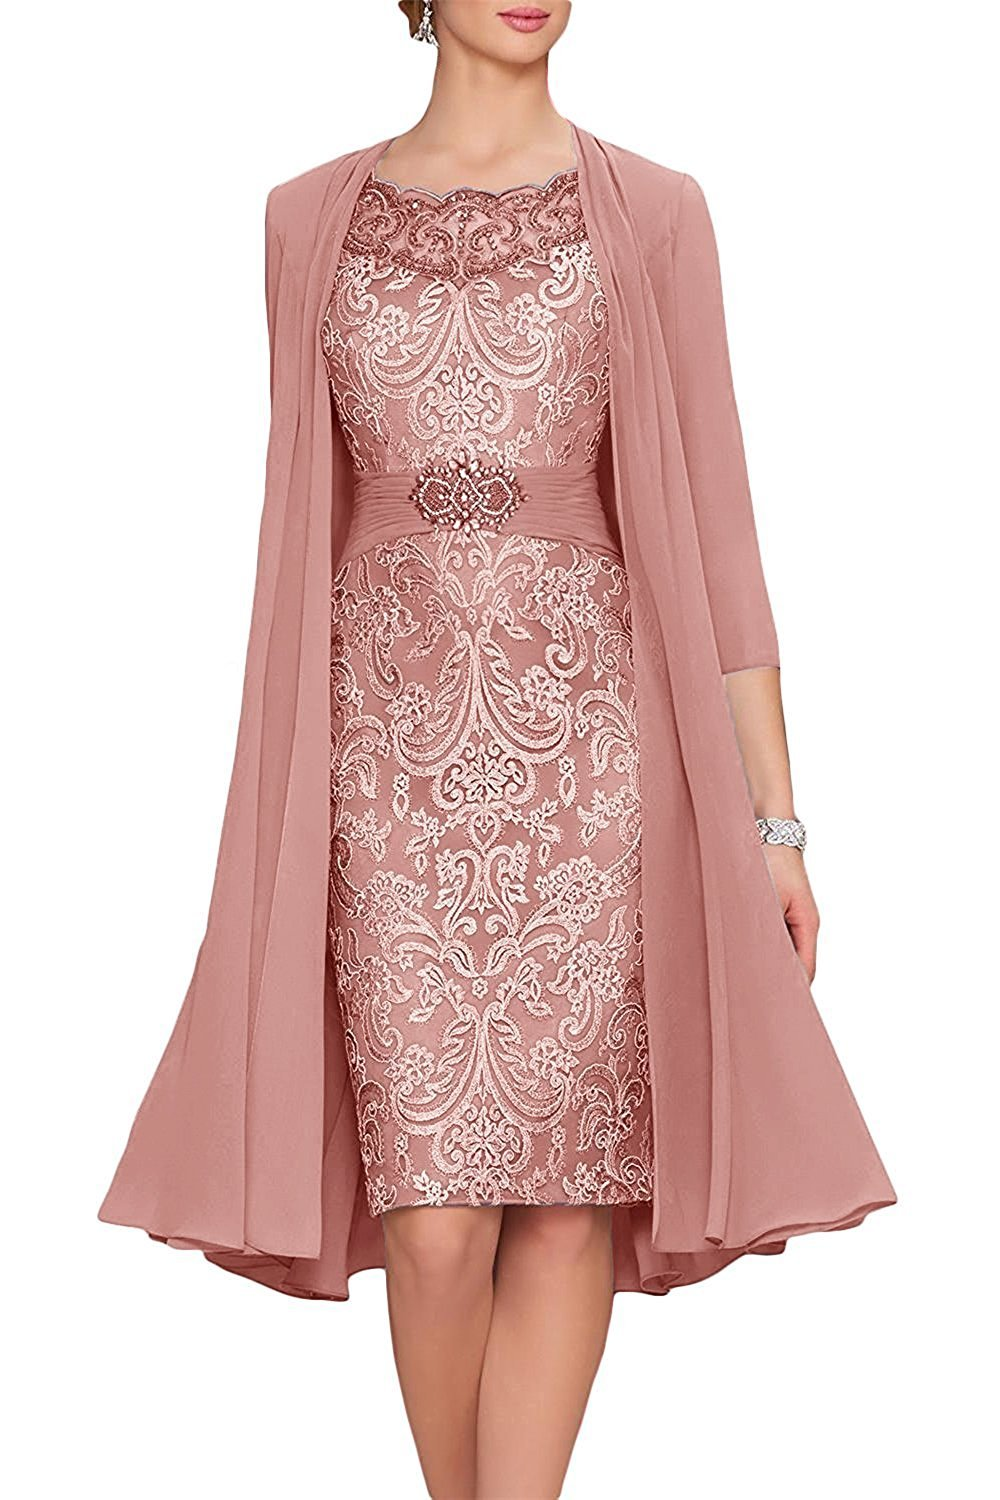 Womens Lace Chiffon Mother of The Bride Dress Formal Gowns with Jacket Blush US16W